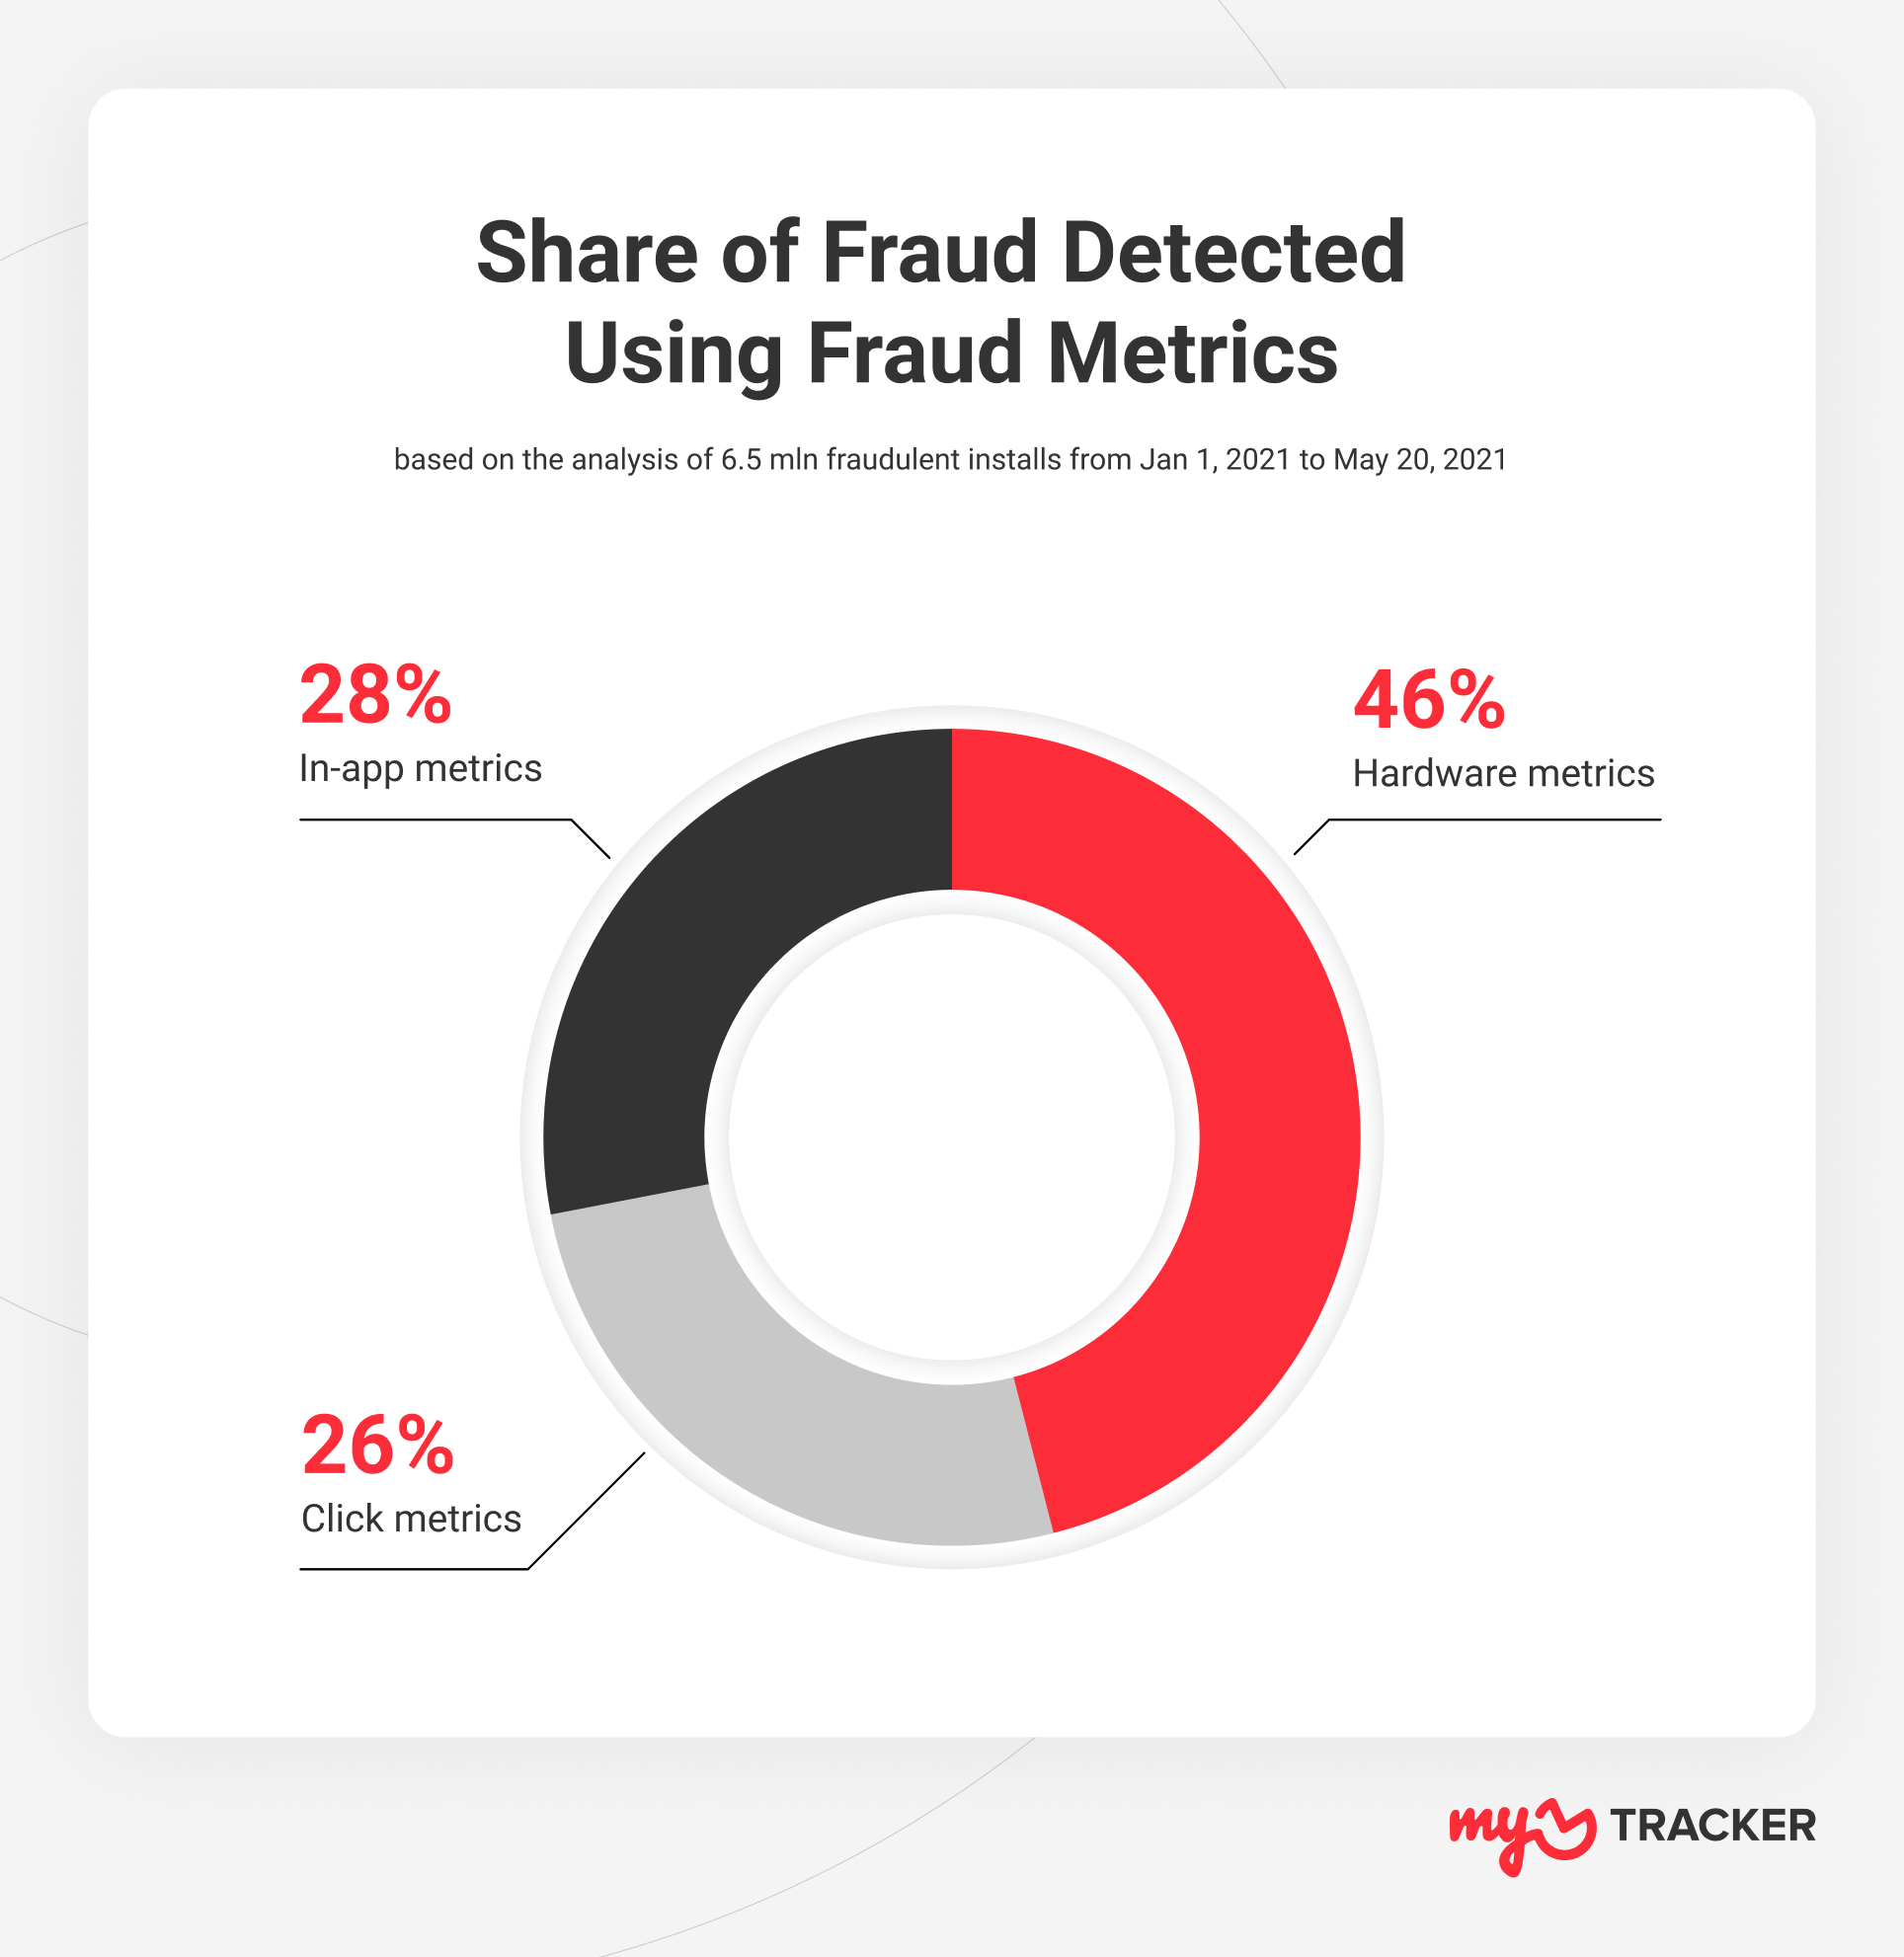 share of fraud detected